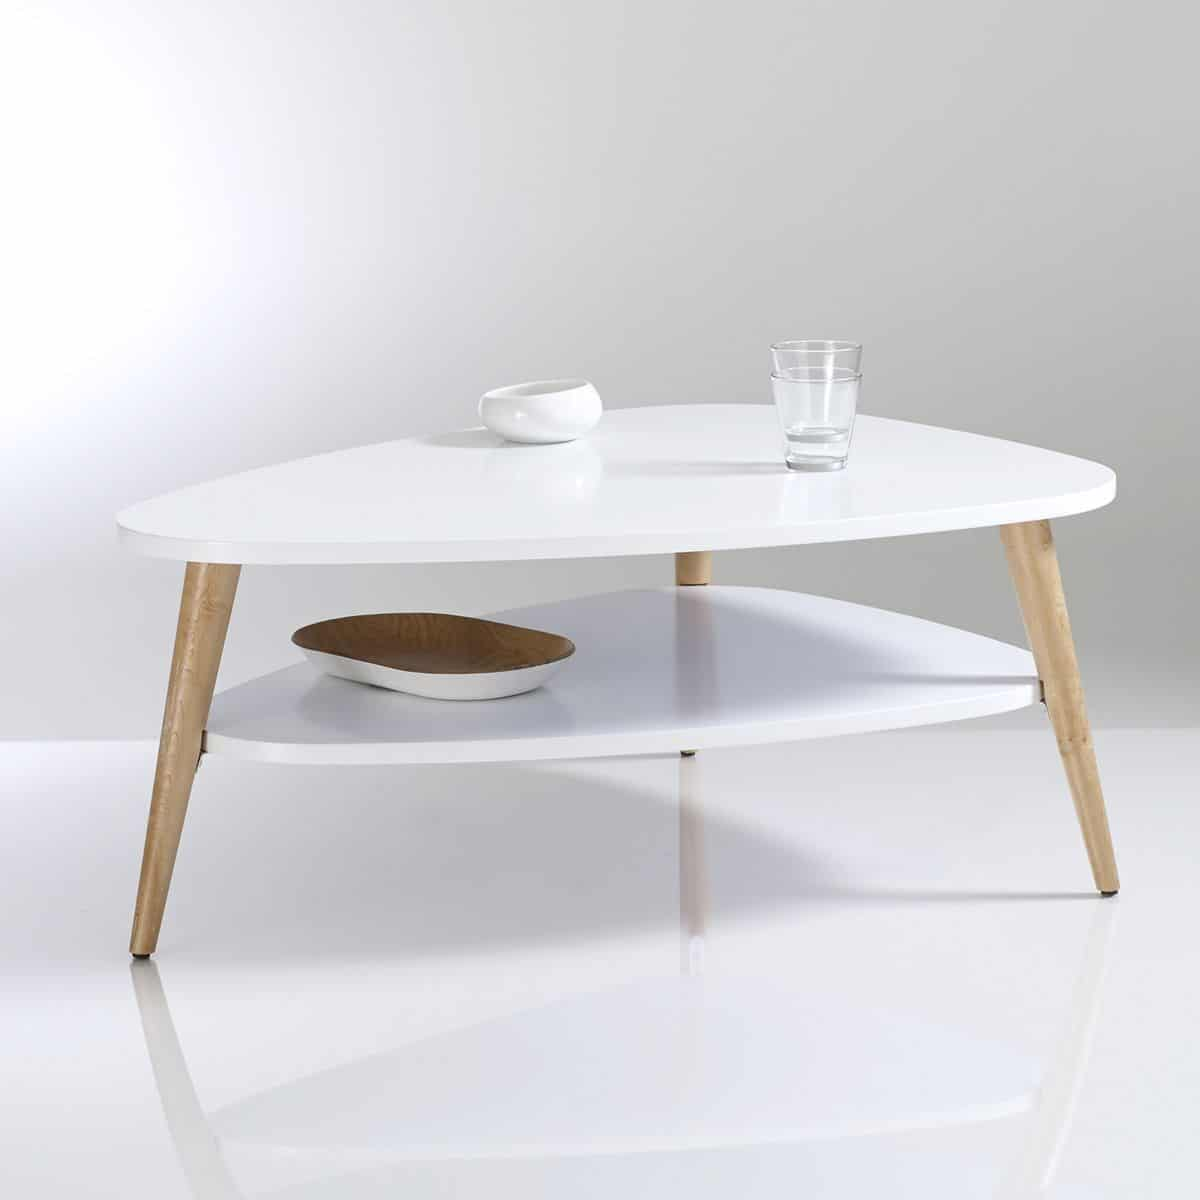 Top 50 de la table basse scandinave guide et s lection for Table basse scandinave avec plateau